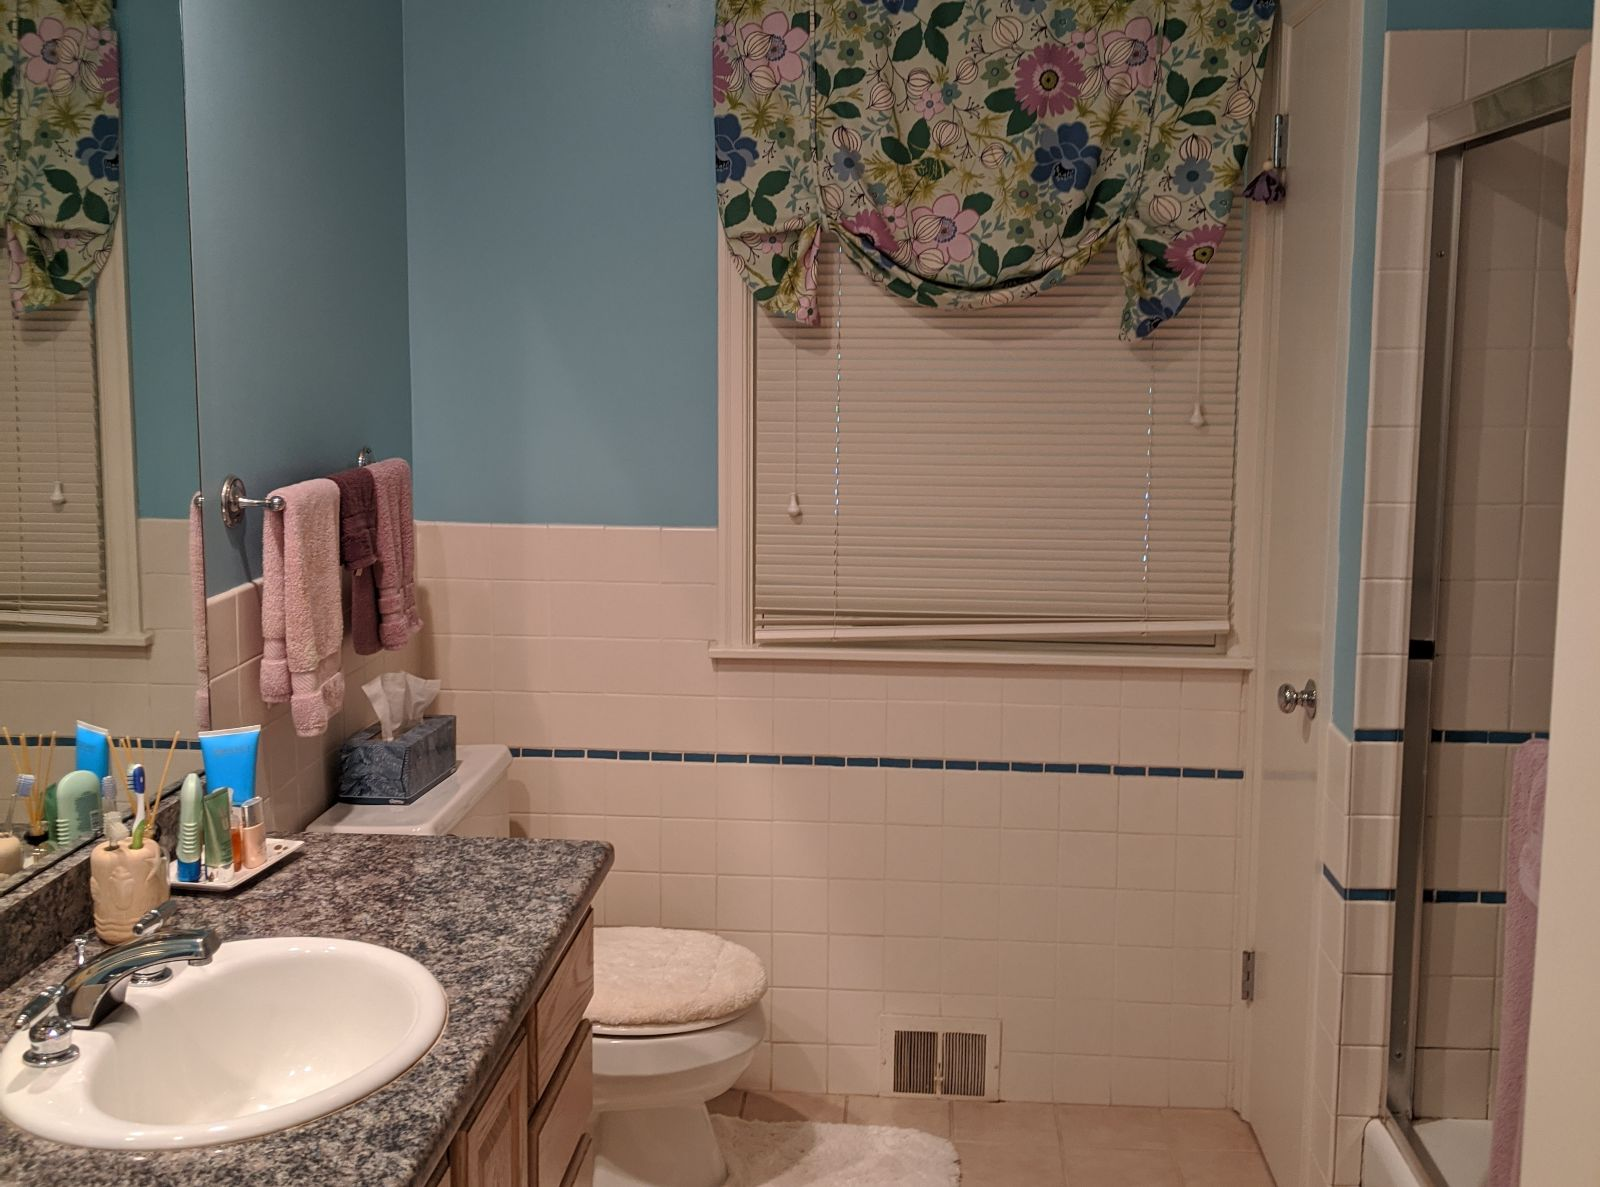 Veach South of Grand Bathroom Transformation (before)